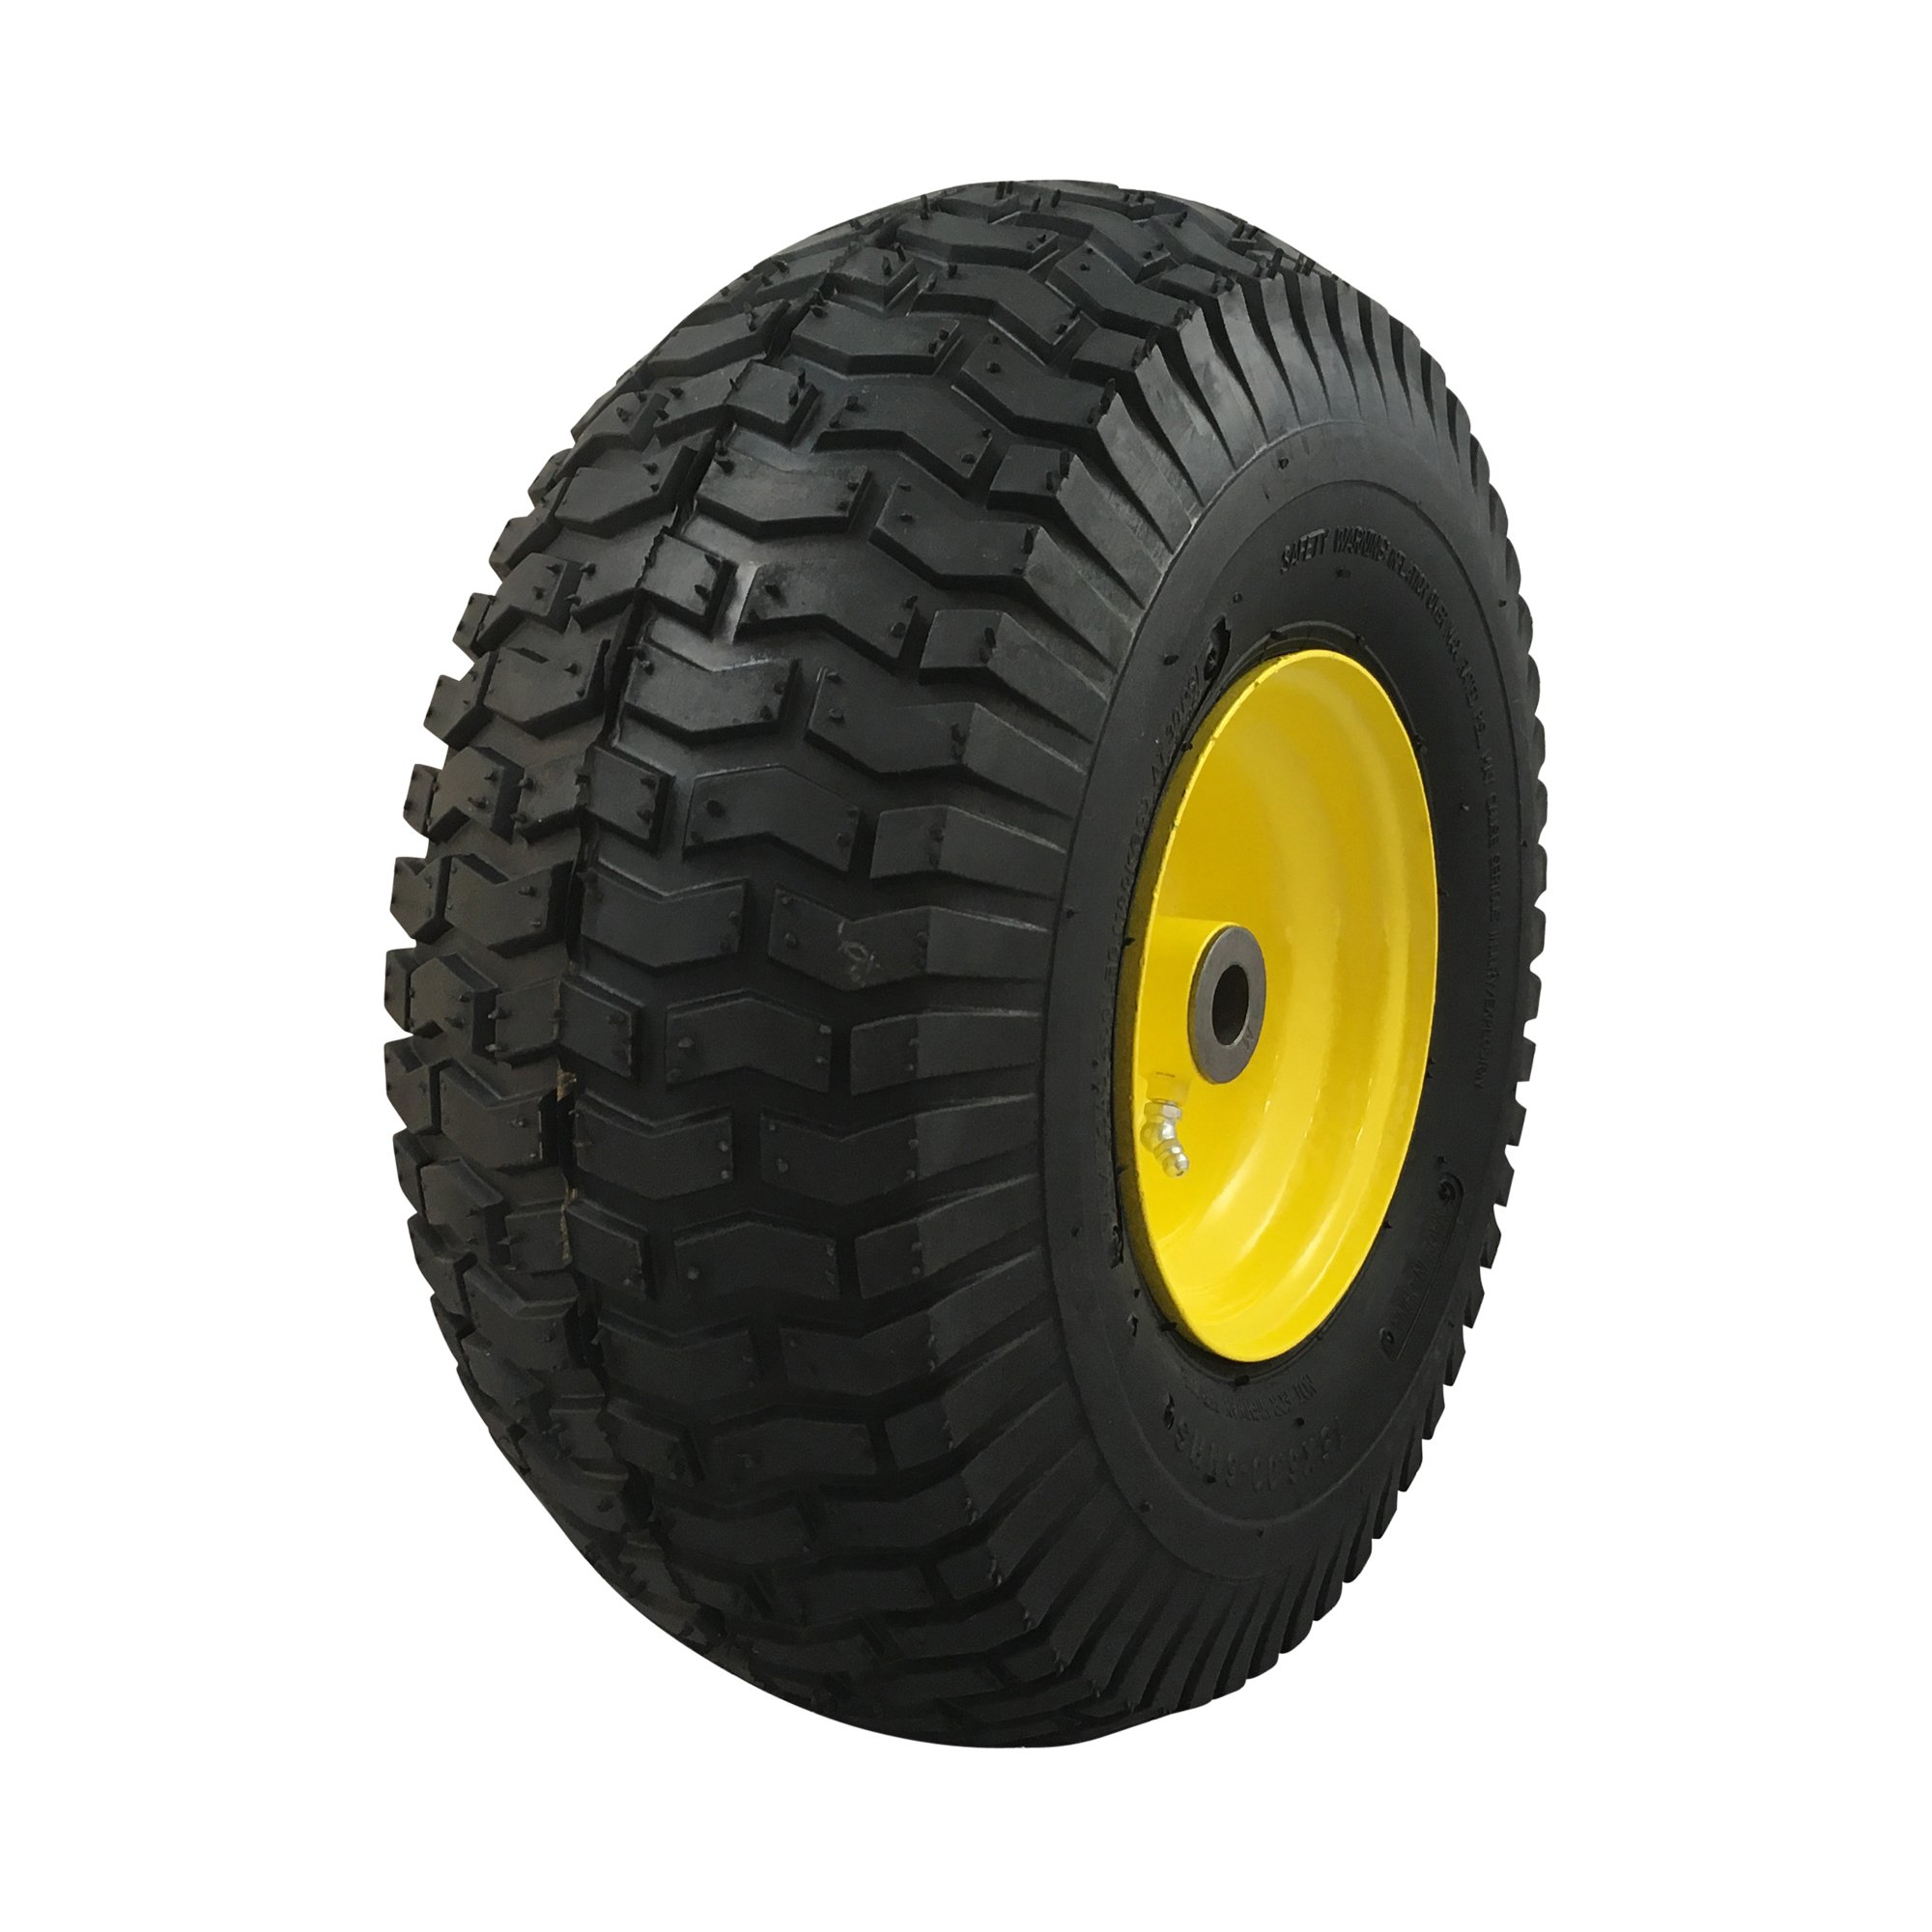 MARASTAR 15x6.00-6 Front Tire Assembly Replacement for John Deere Riding Mowers - Turf Saver Tread